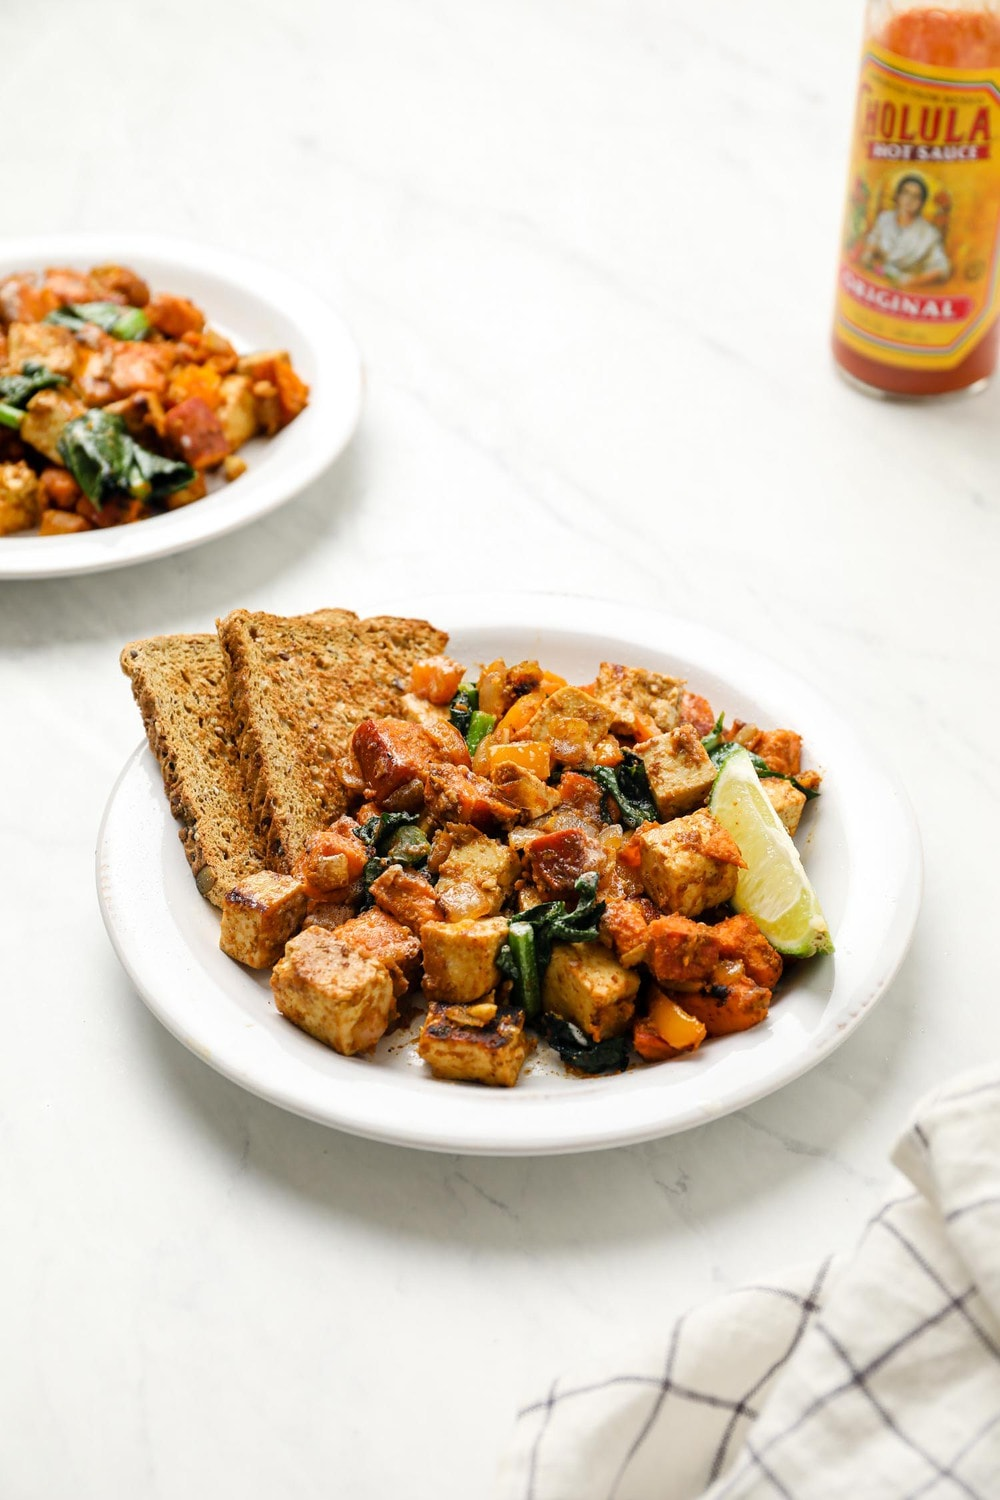 Sweet potato tofu hash with a lime wedge and gluten free toast.